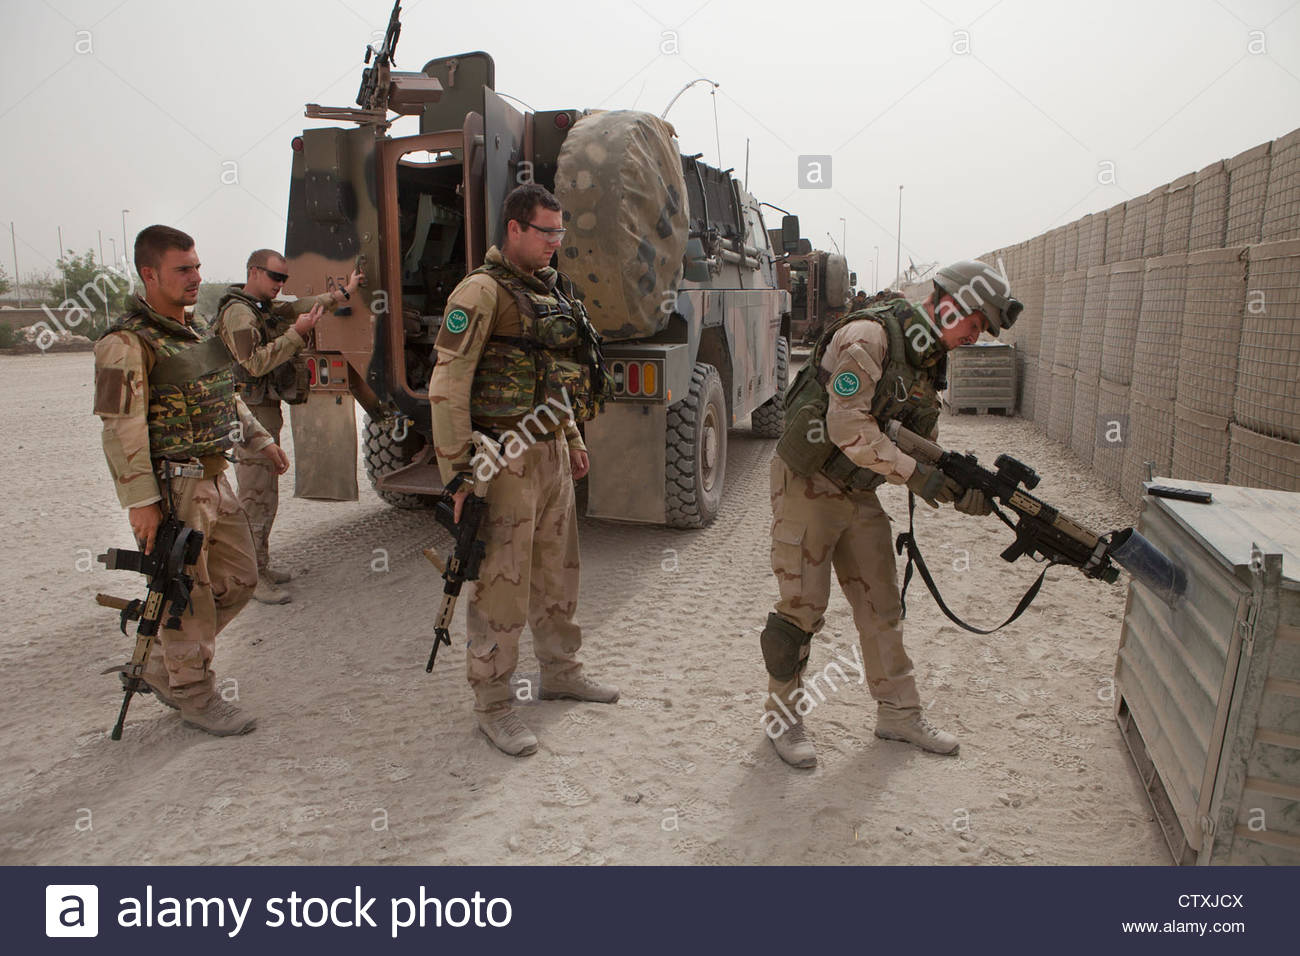 dutch-military-on-patrol-in-kunduz-afghanistan-CTXJCX